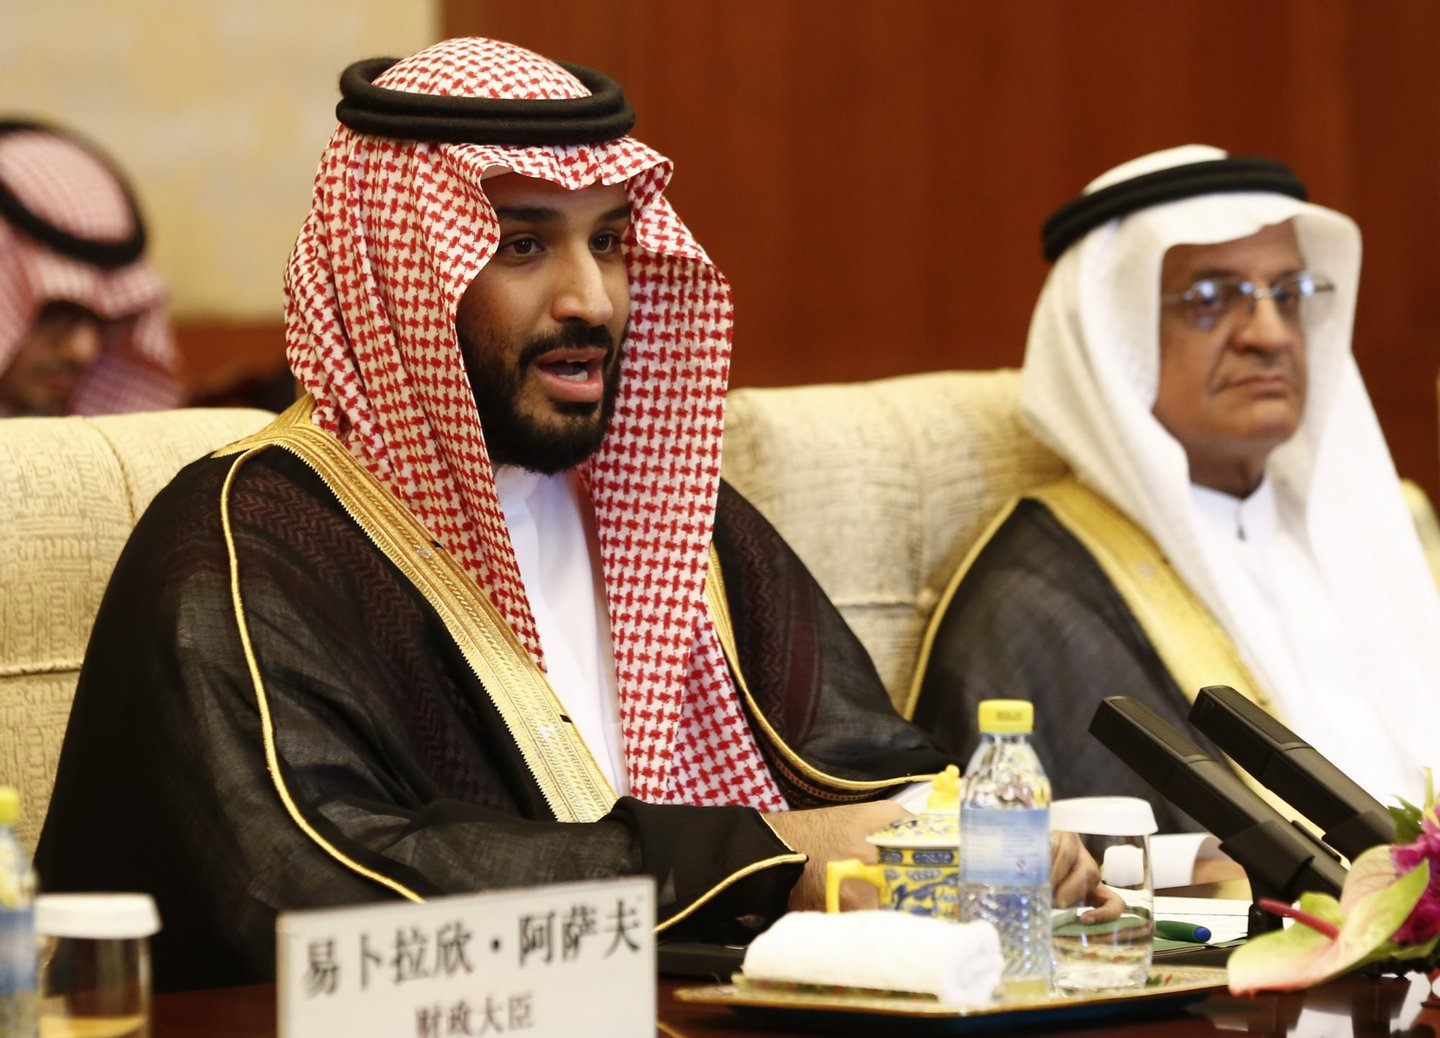 Saudi Arabia's Deputy Crown Prince Mohammed bin Salman (L) speaks during a meeting with Chinese President Xi Jinping at the Diaoyutai State Guesthouse in Beijing on August 31, 2016. The deputy prince is meeting Chinese officials during his visit to boost bilateral ties between the two nations. / AFP / POOL / Rolex DELA PENA (Photo credit should read ROLEX DELA PENA/AFP/Getty Images)